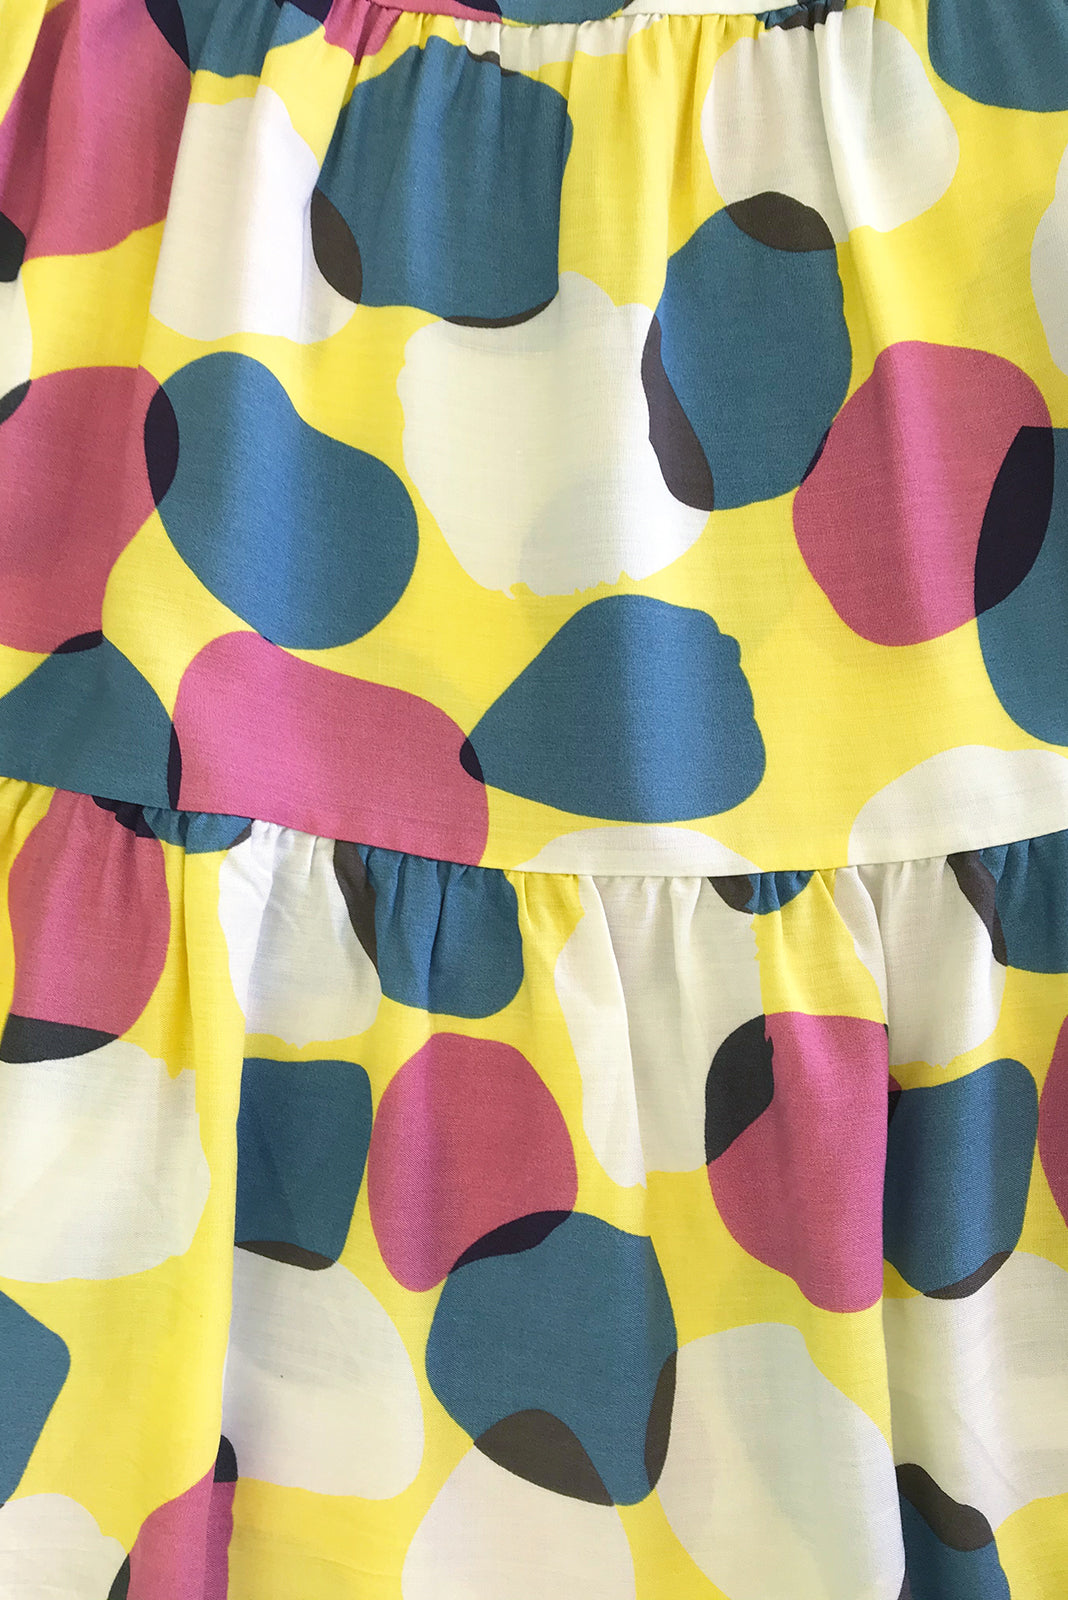 Fabric swatch of Jina Zinzi Yellow Dress featuring 100% rayon in pale yellow base with white, mauve and smoky blue spots print.